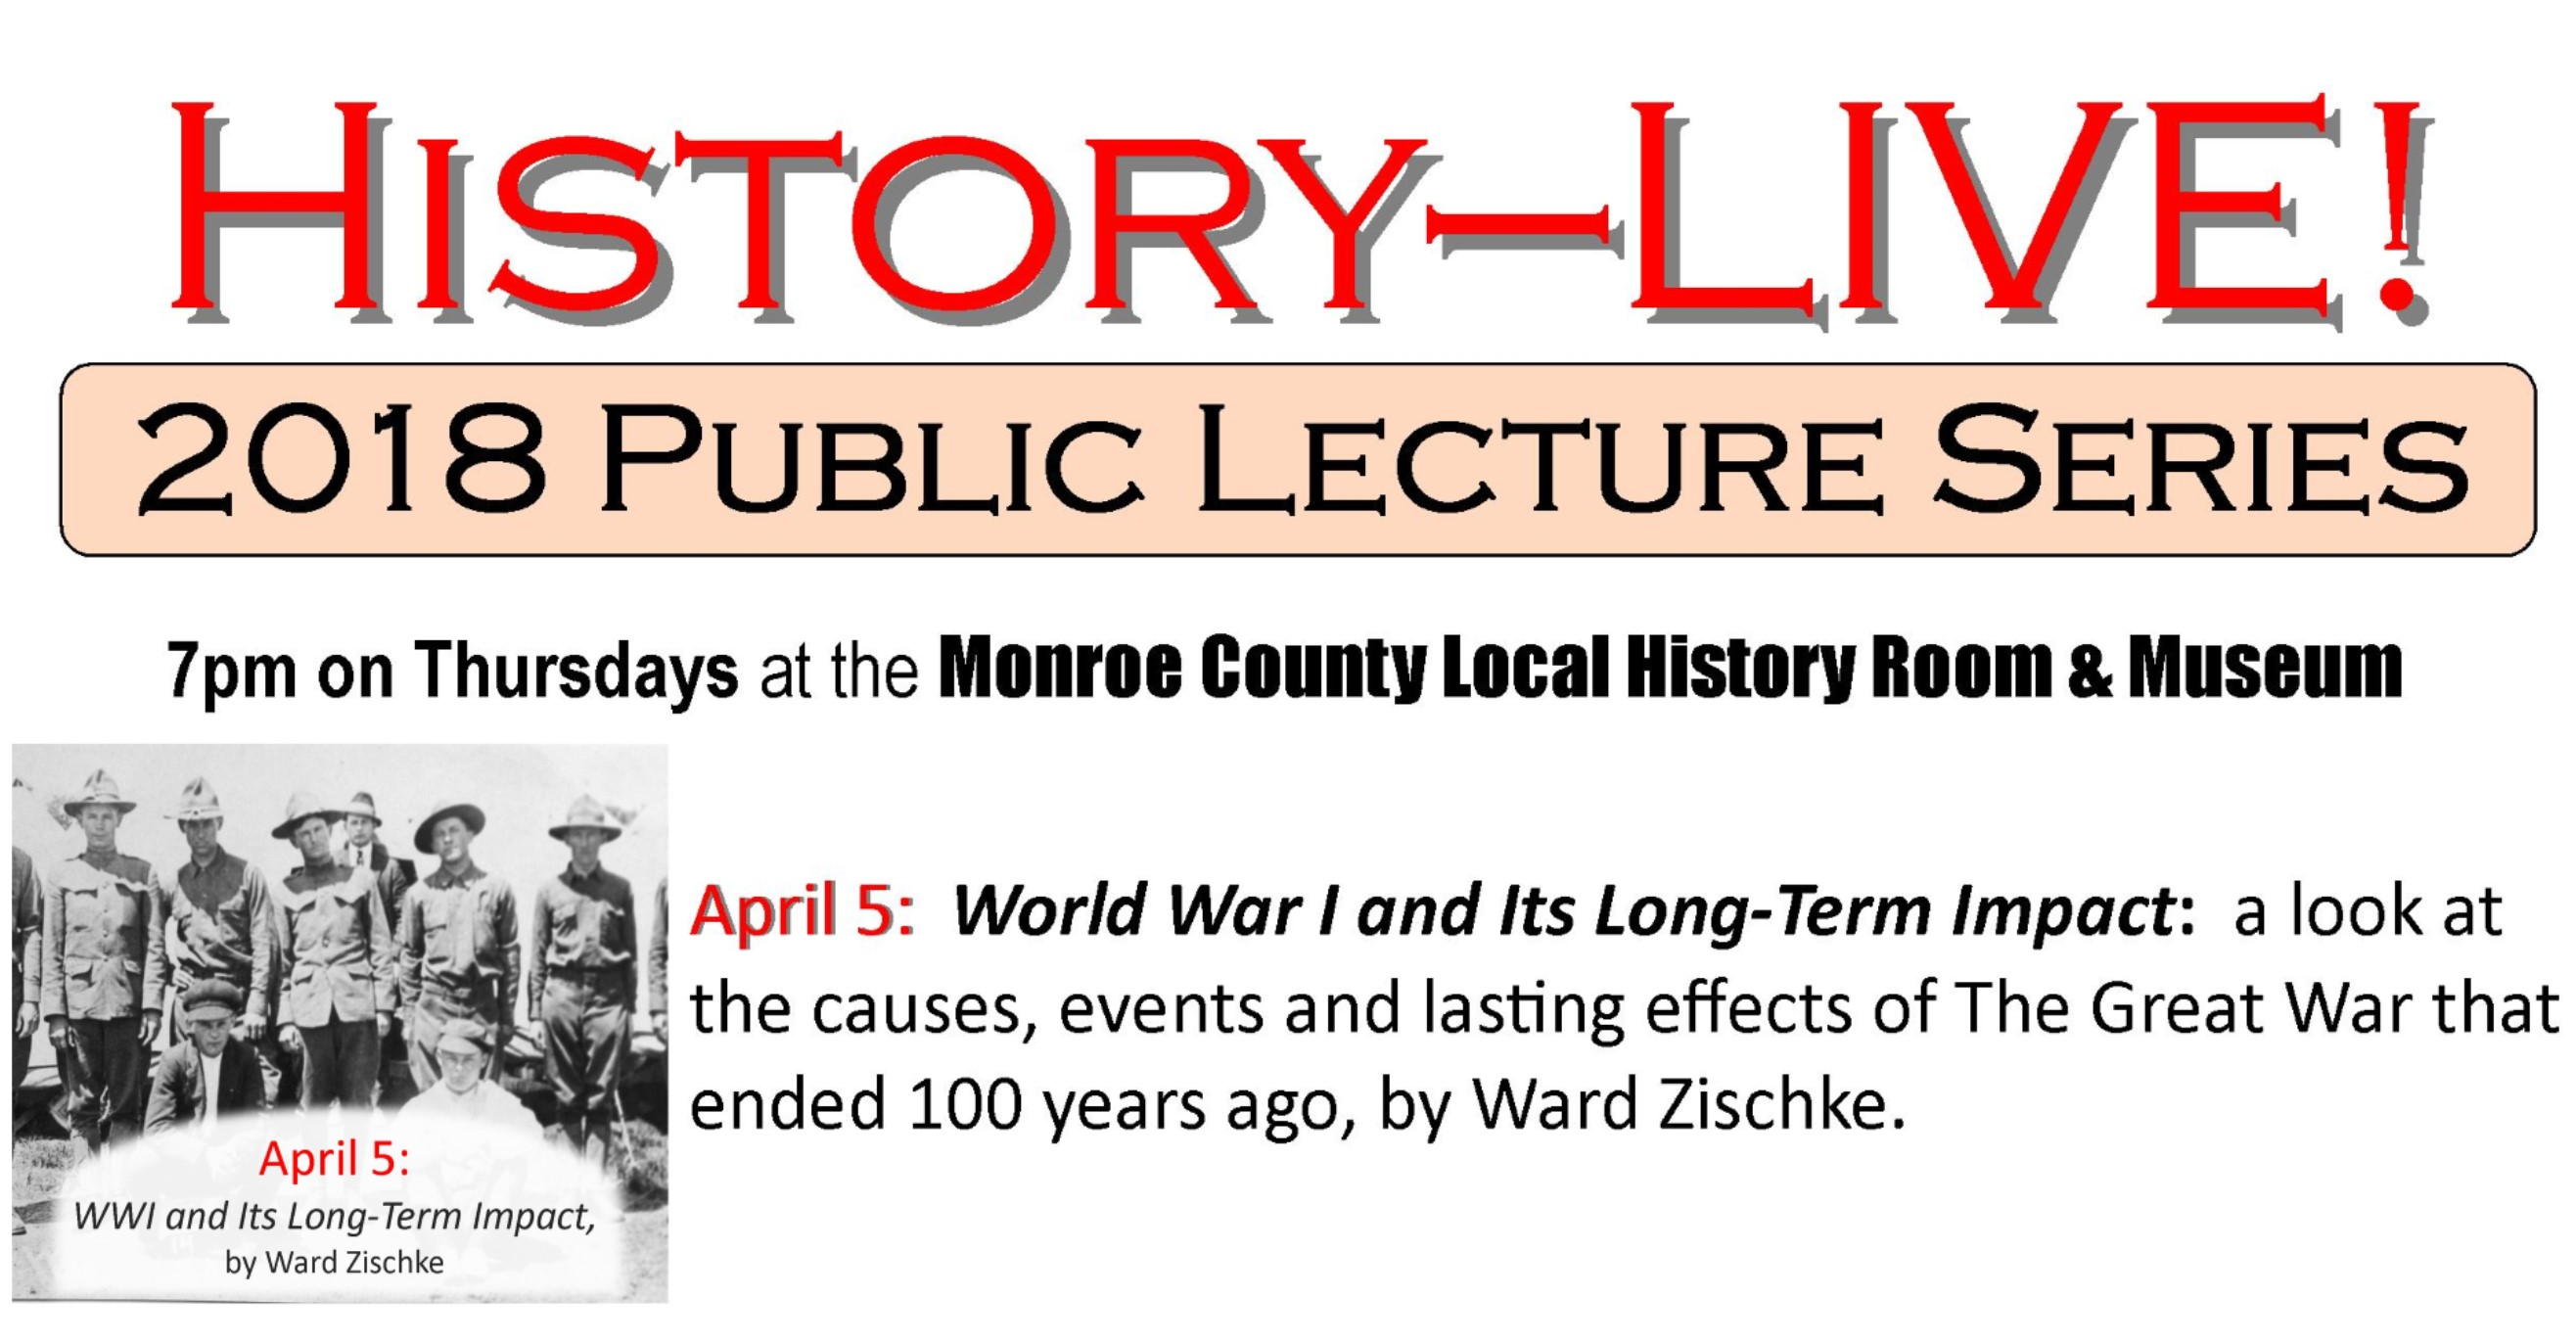 Monroe County Local History Museum The Best Website To Research These Pages Describe Domestic Wiring System Installed In Spooky World War I Program 7pm April 5th 2018